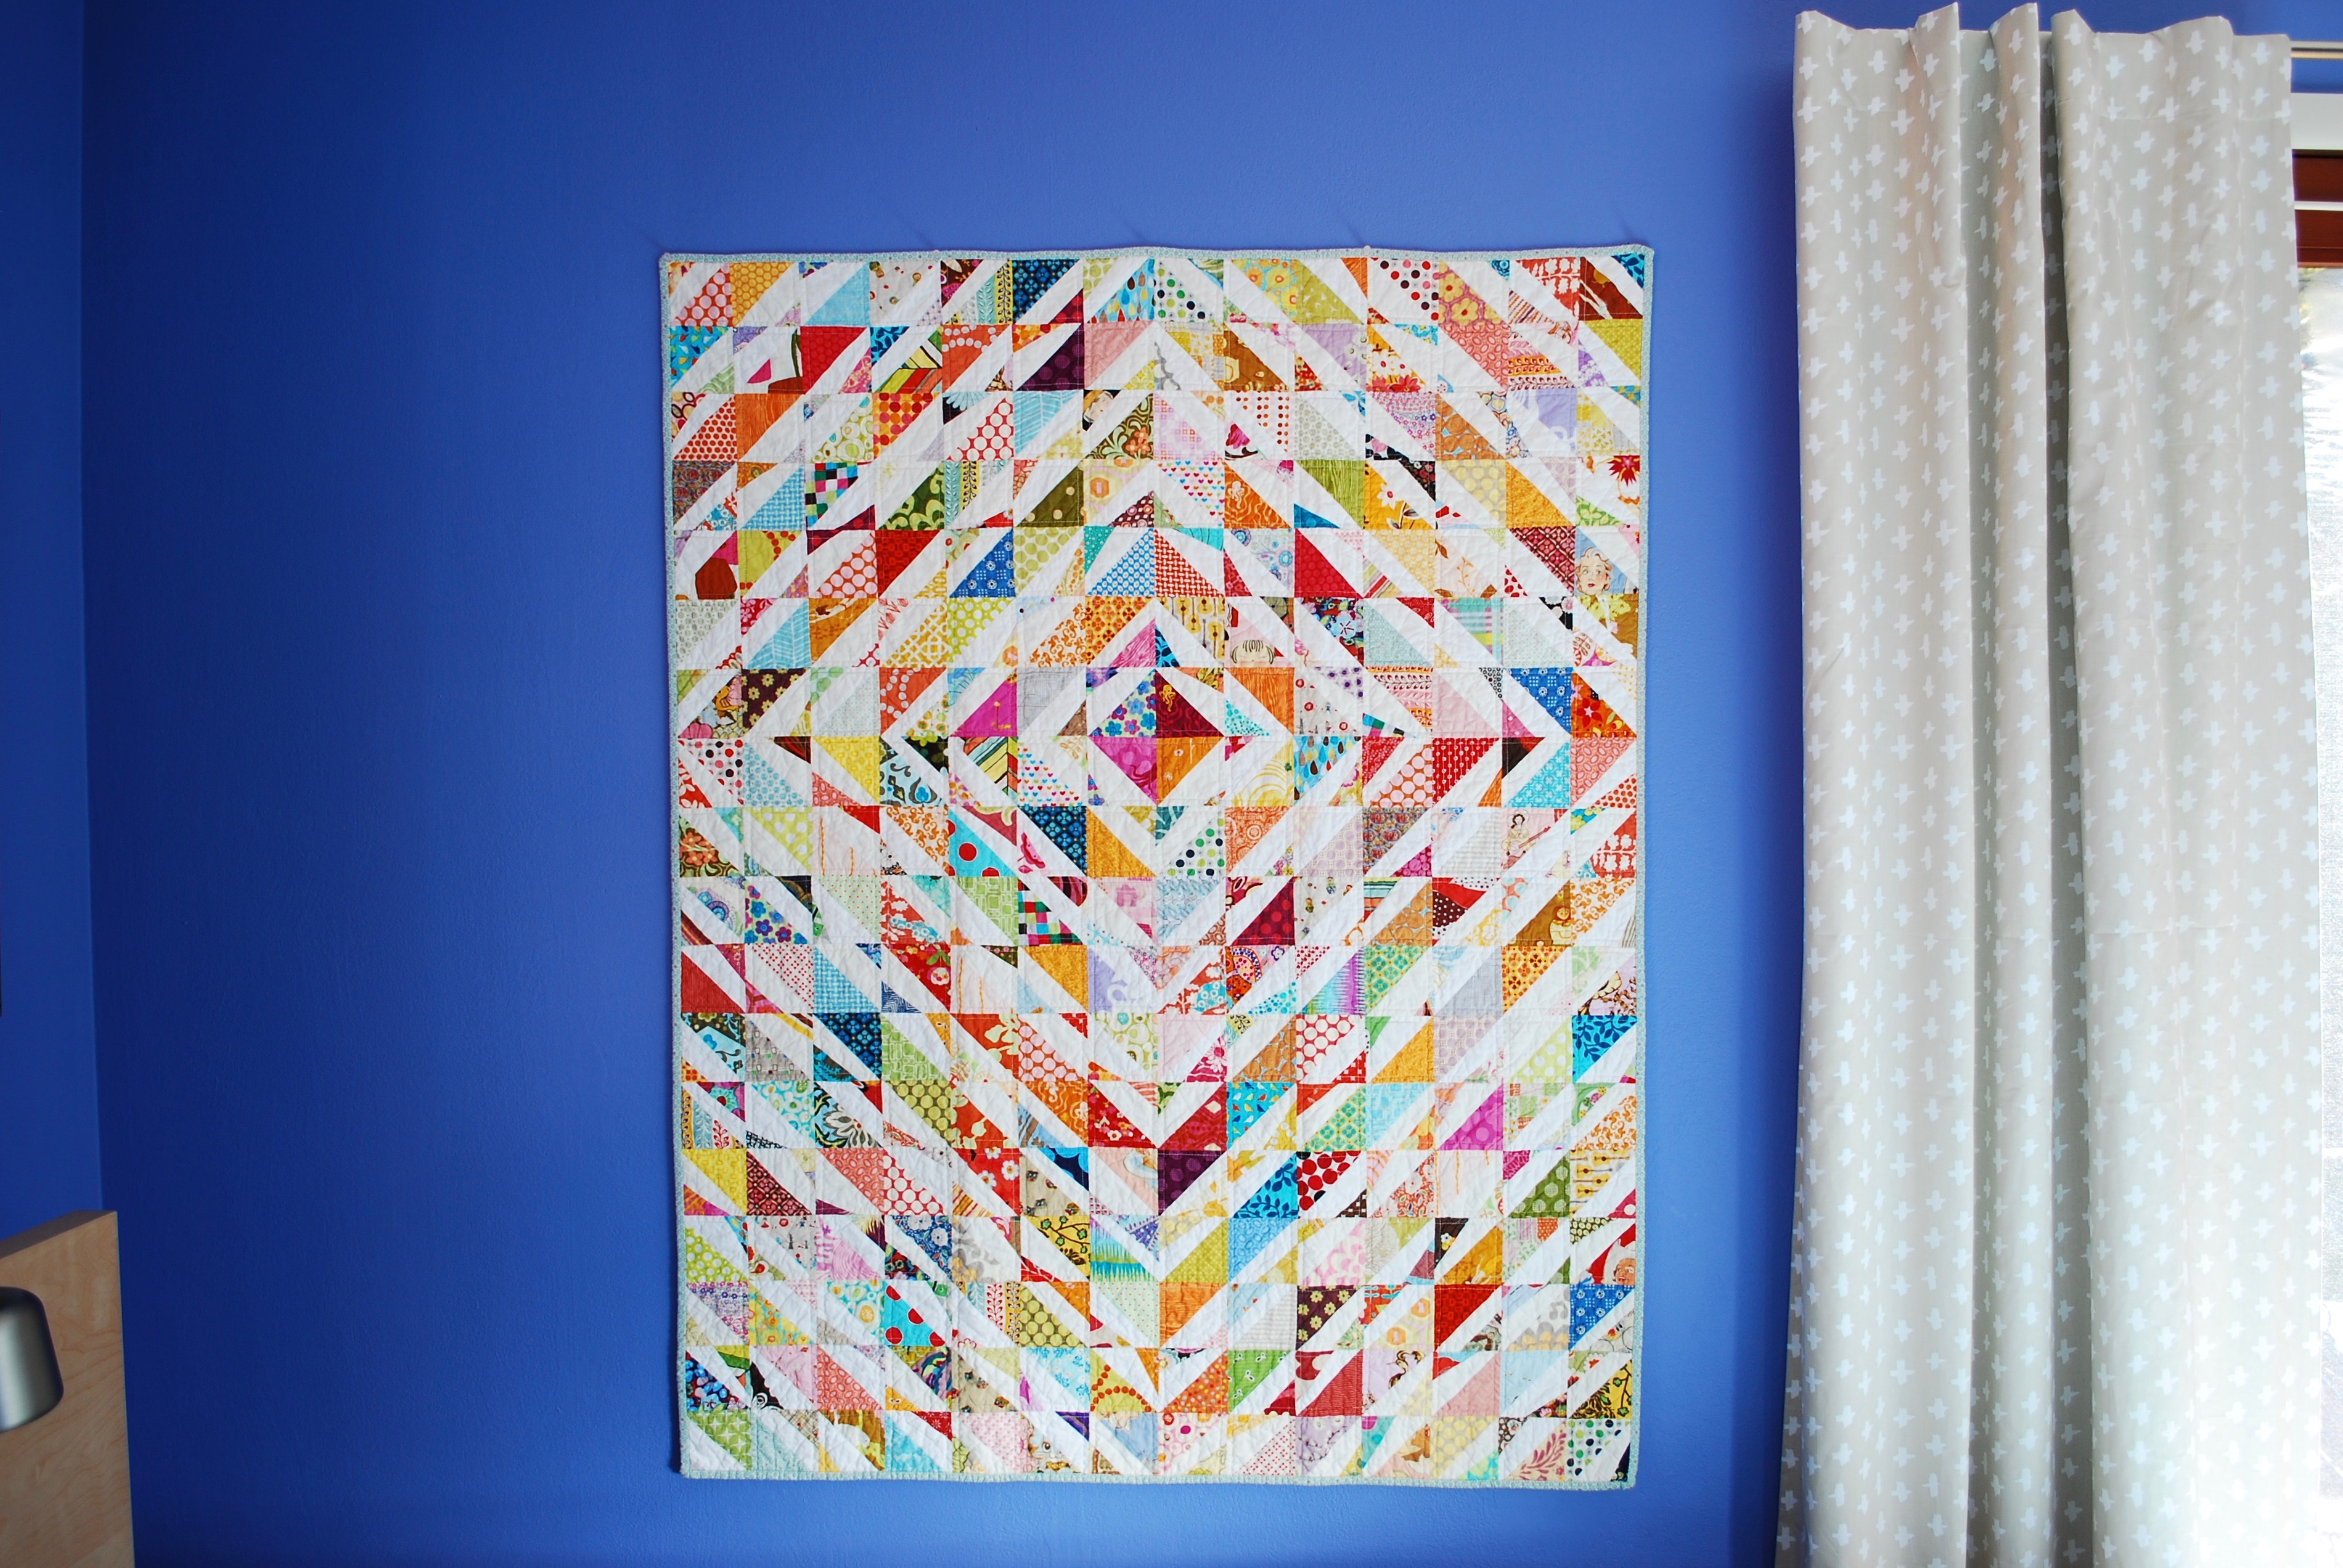 sew katie did | Seattle quilting workshops and studio | double-trouble quilt